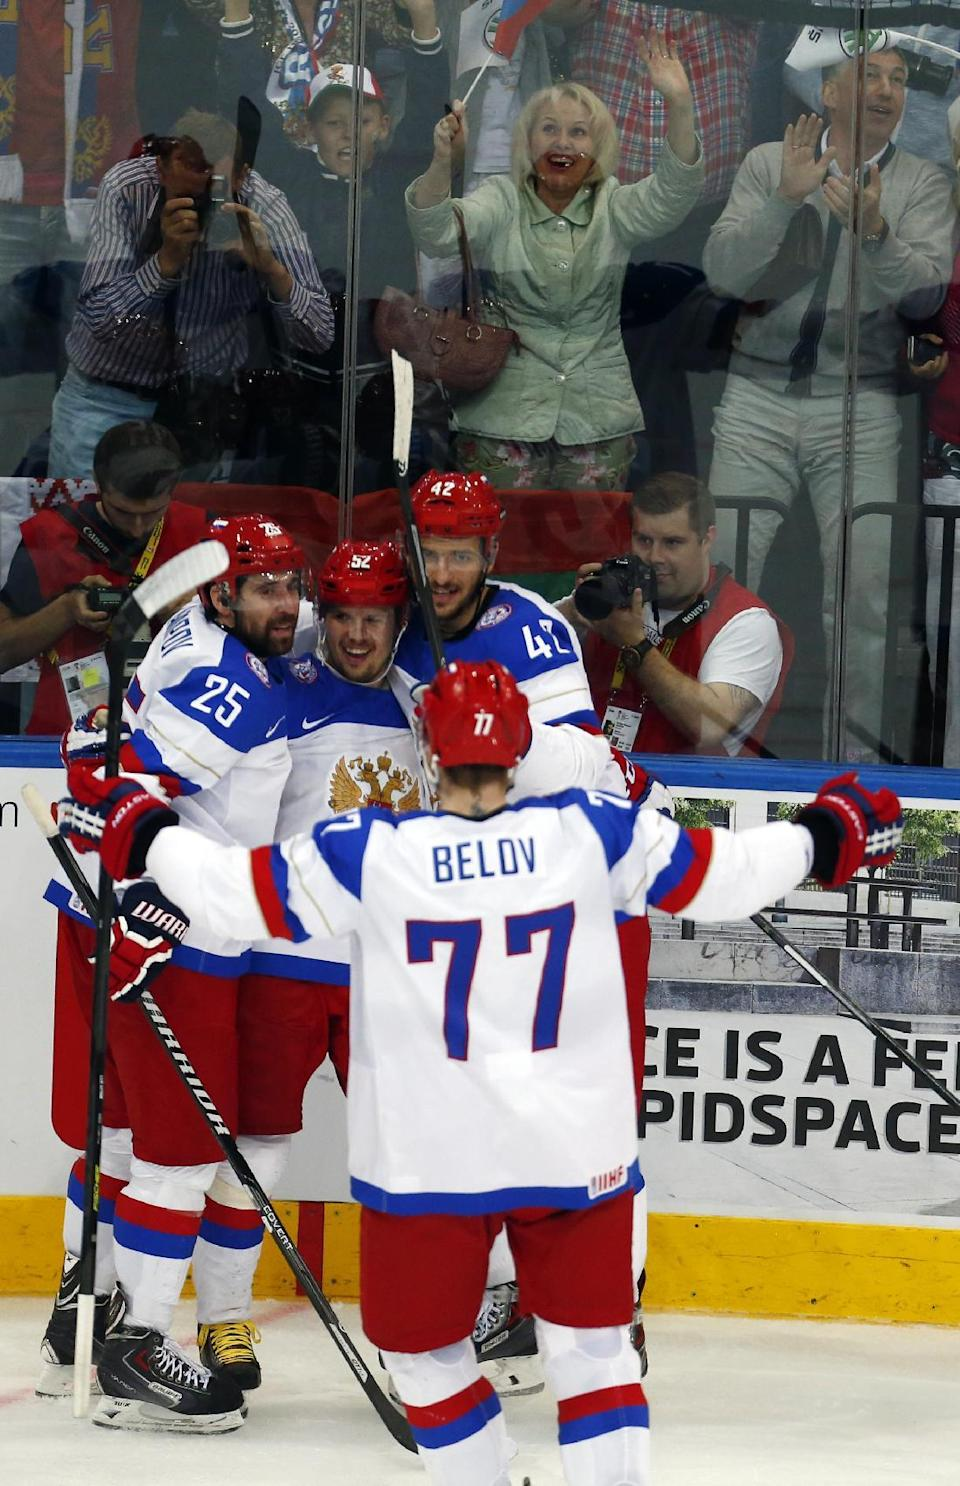 Russia forward Sergei Shirokov, second from left, celebrates a goal with Danis Zaripov (25), Artyom Anisimov (42) and Anton Belov (77) during the gold medal match against Finland at the Ice Hockey World Championship in Minsk, Belarus, Sunday, May 25, 2014. (AP Photo/Sergei Grits)